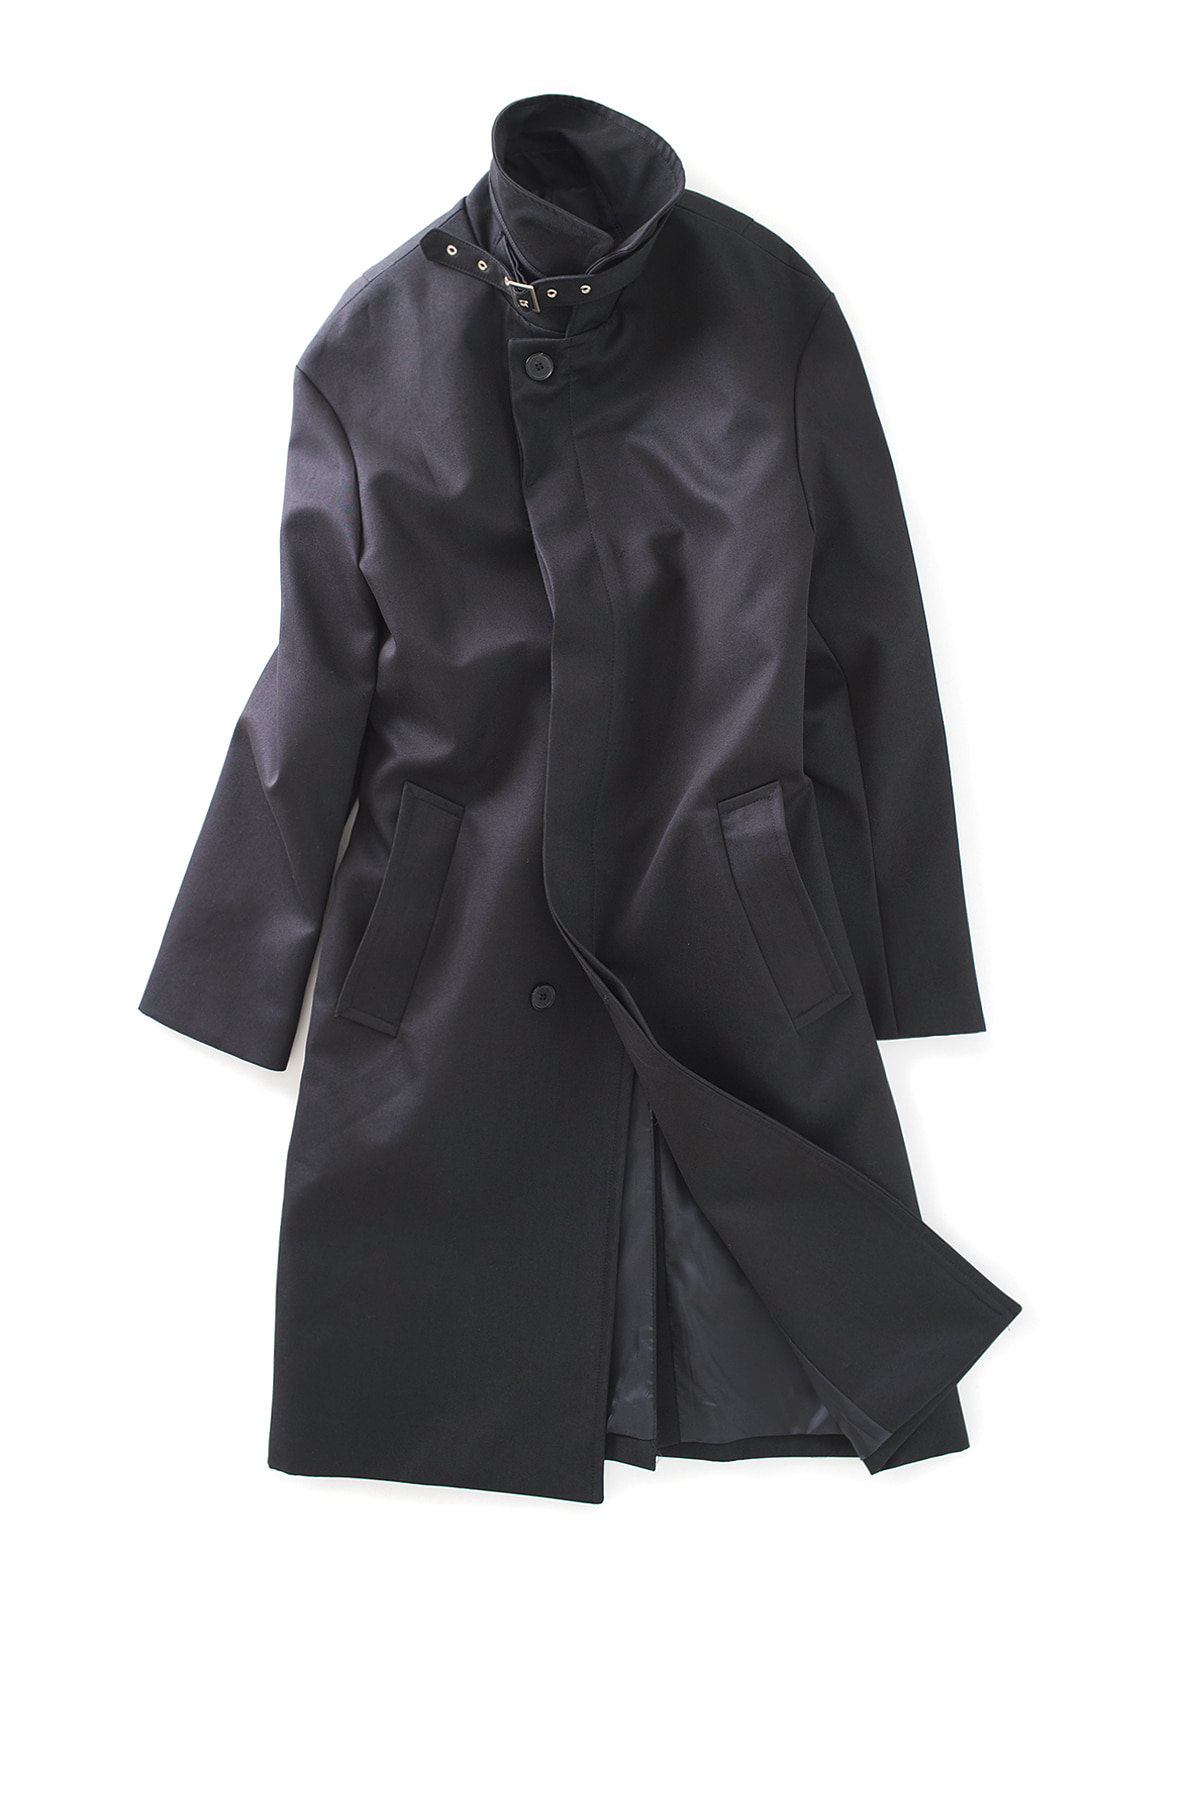 IKHENATON : Mac Coat (Black)